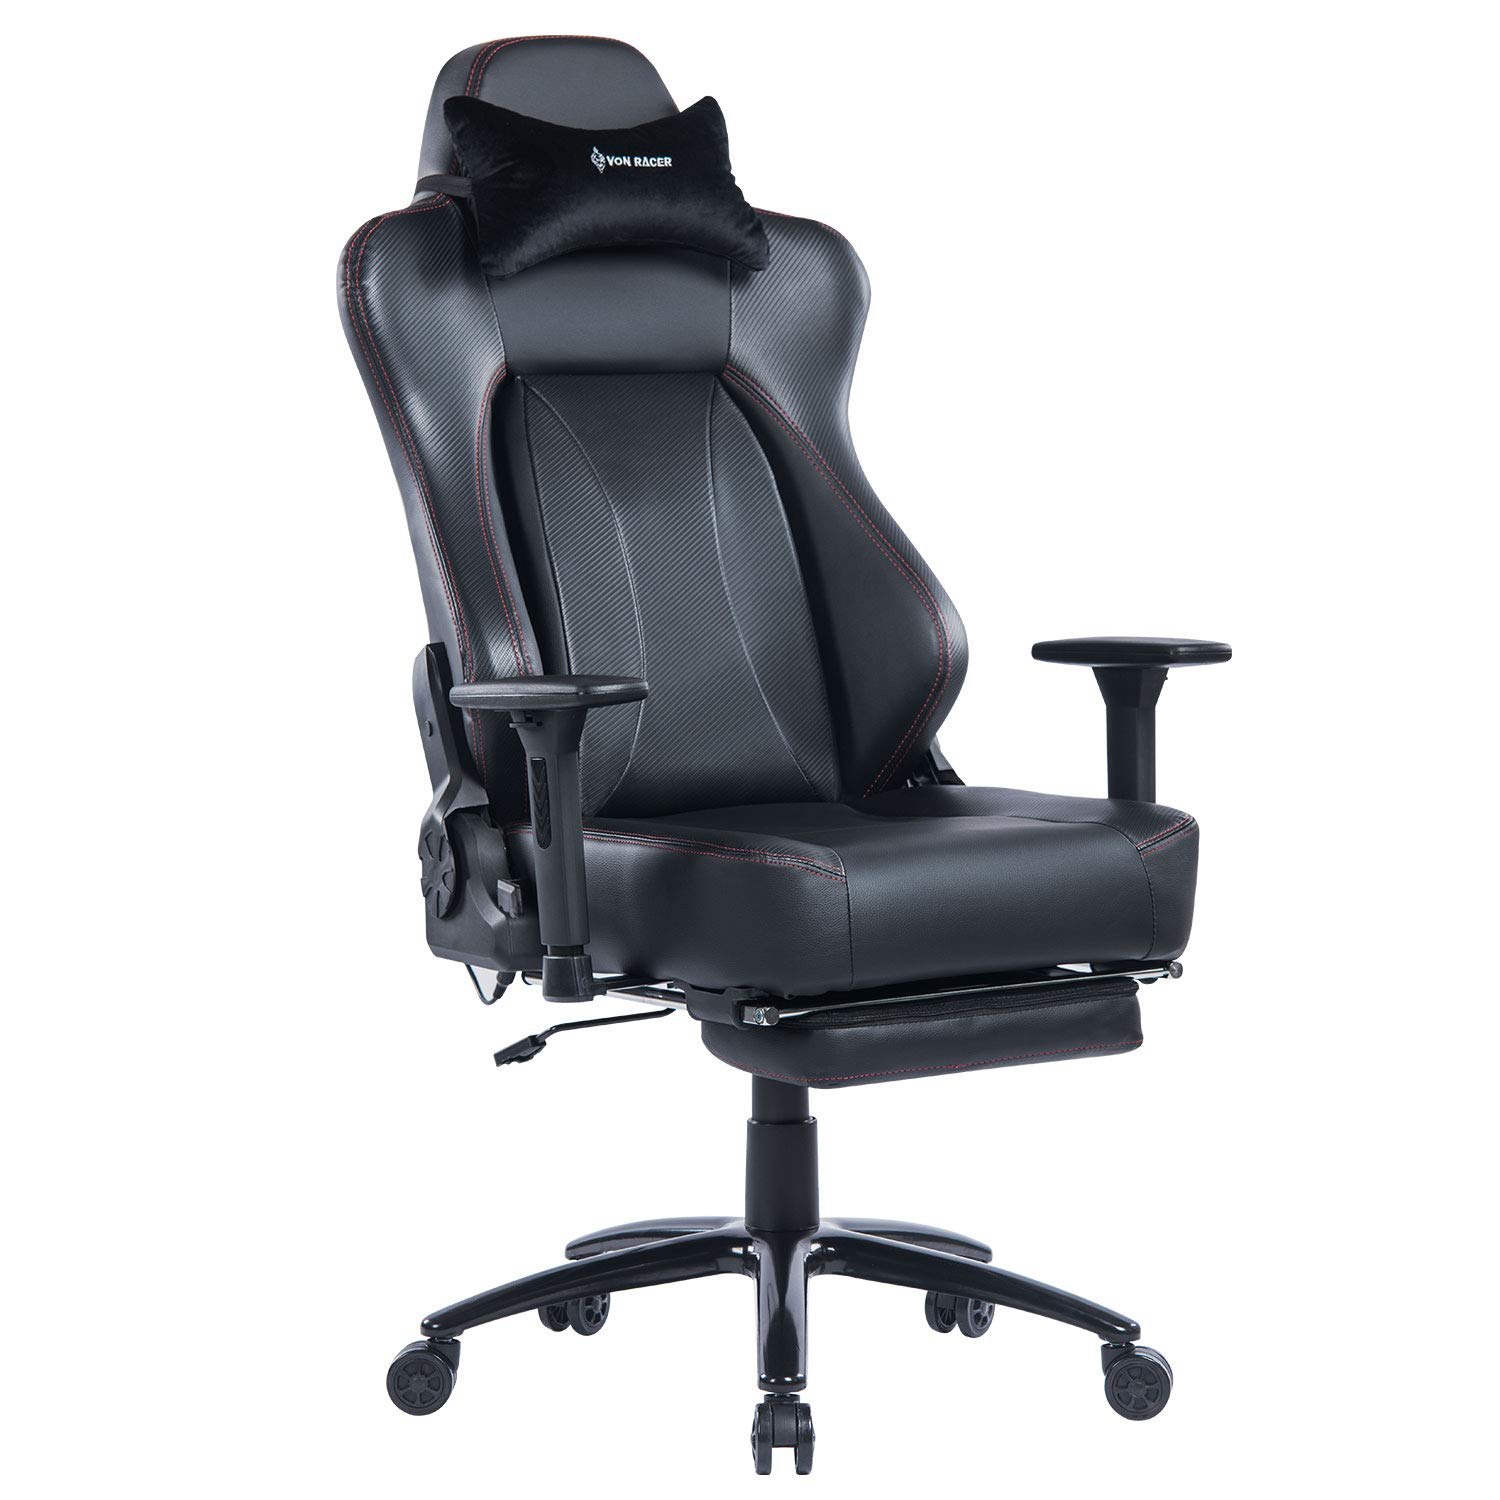 VON RACER Big & Tall 350lbs Massage Gaming Chair with Retractable Footrest - Adjustable Back Angle and Arms Ergonomic High-Back Leather Racing Executive Computer Desk Office Chair Metal Base, Black by VON RACER